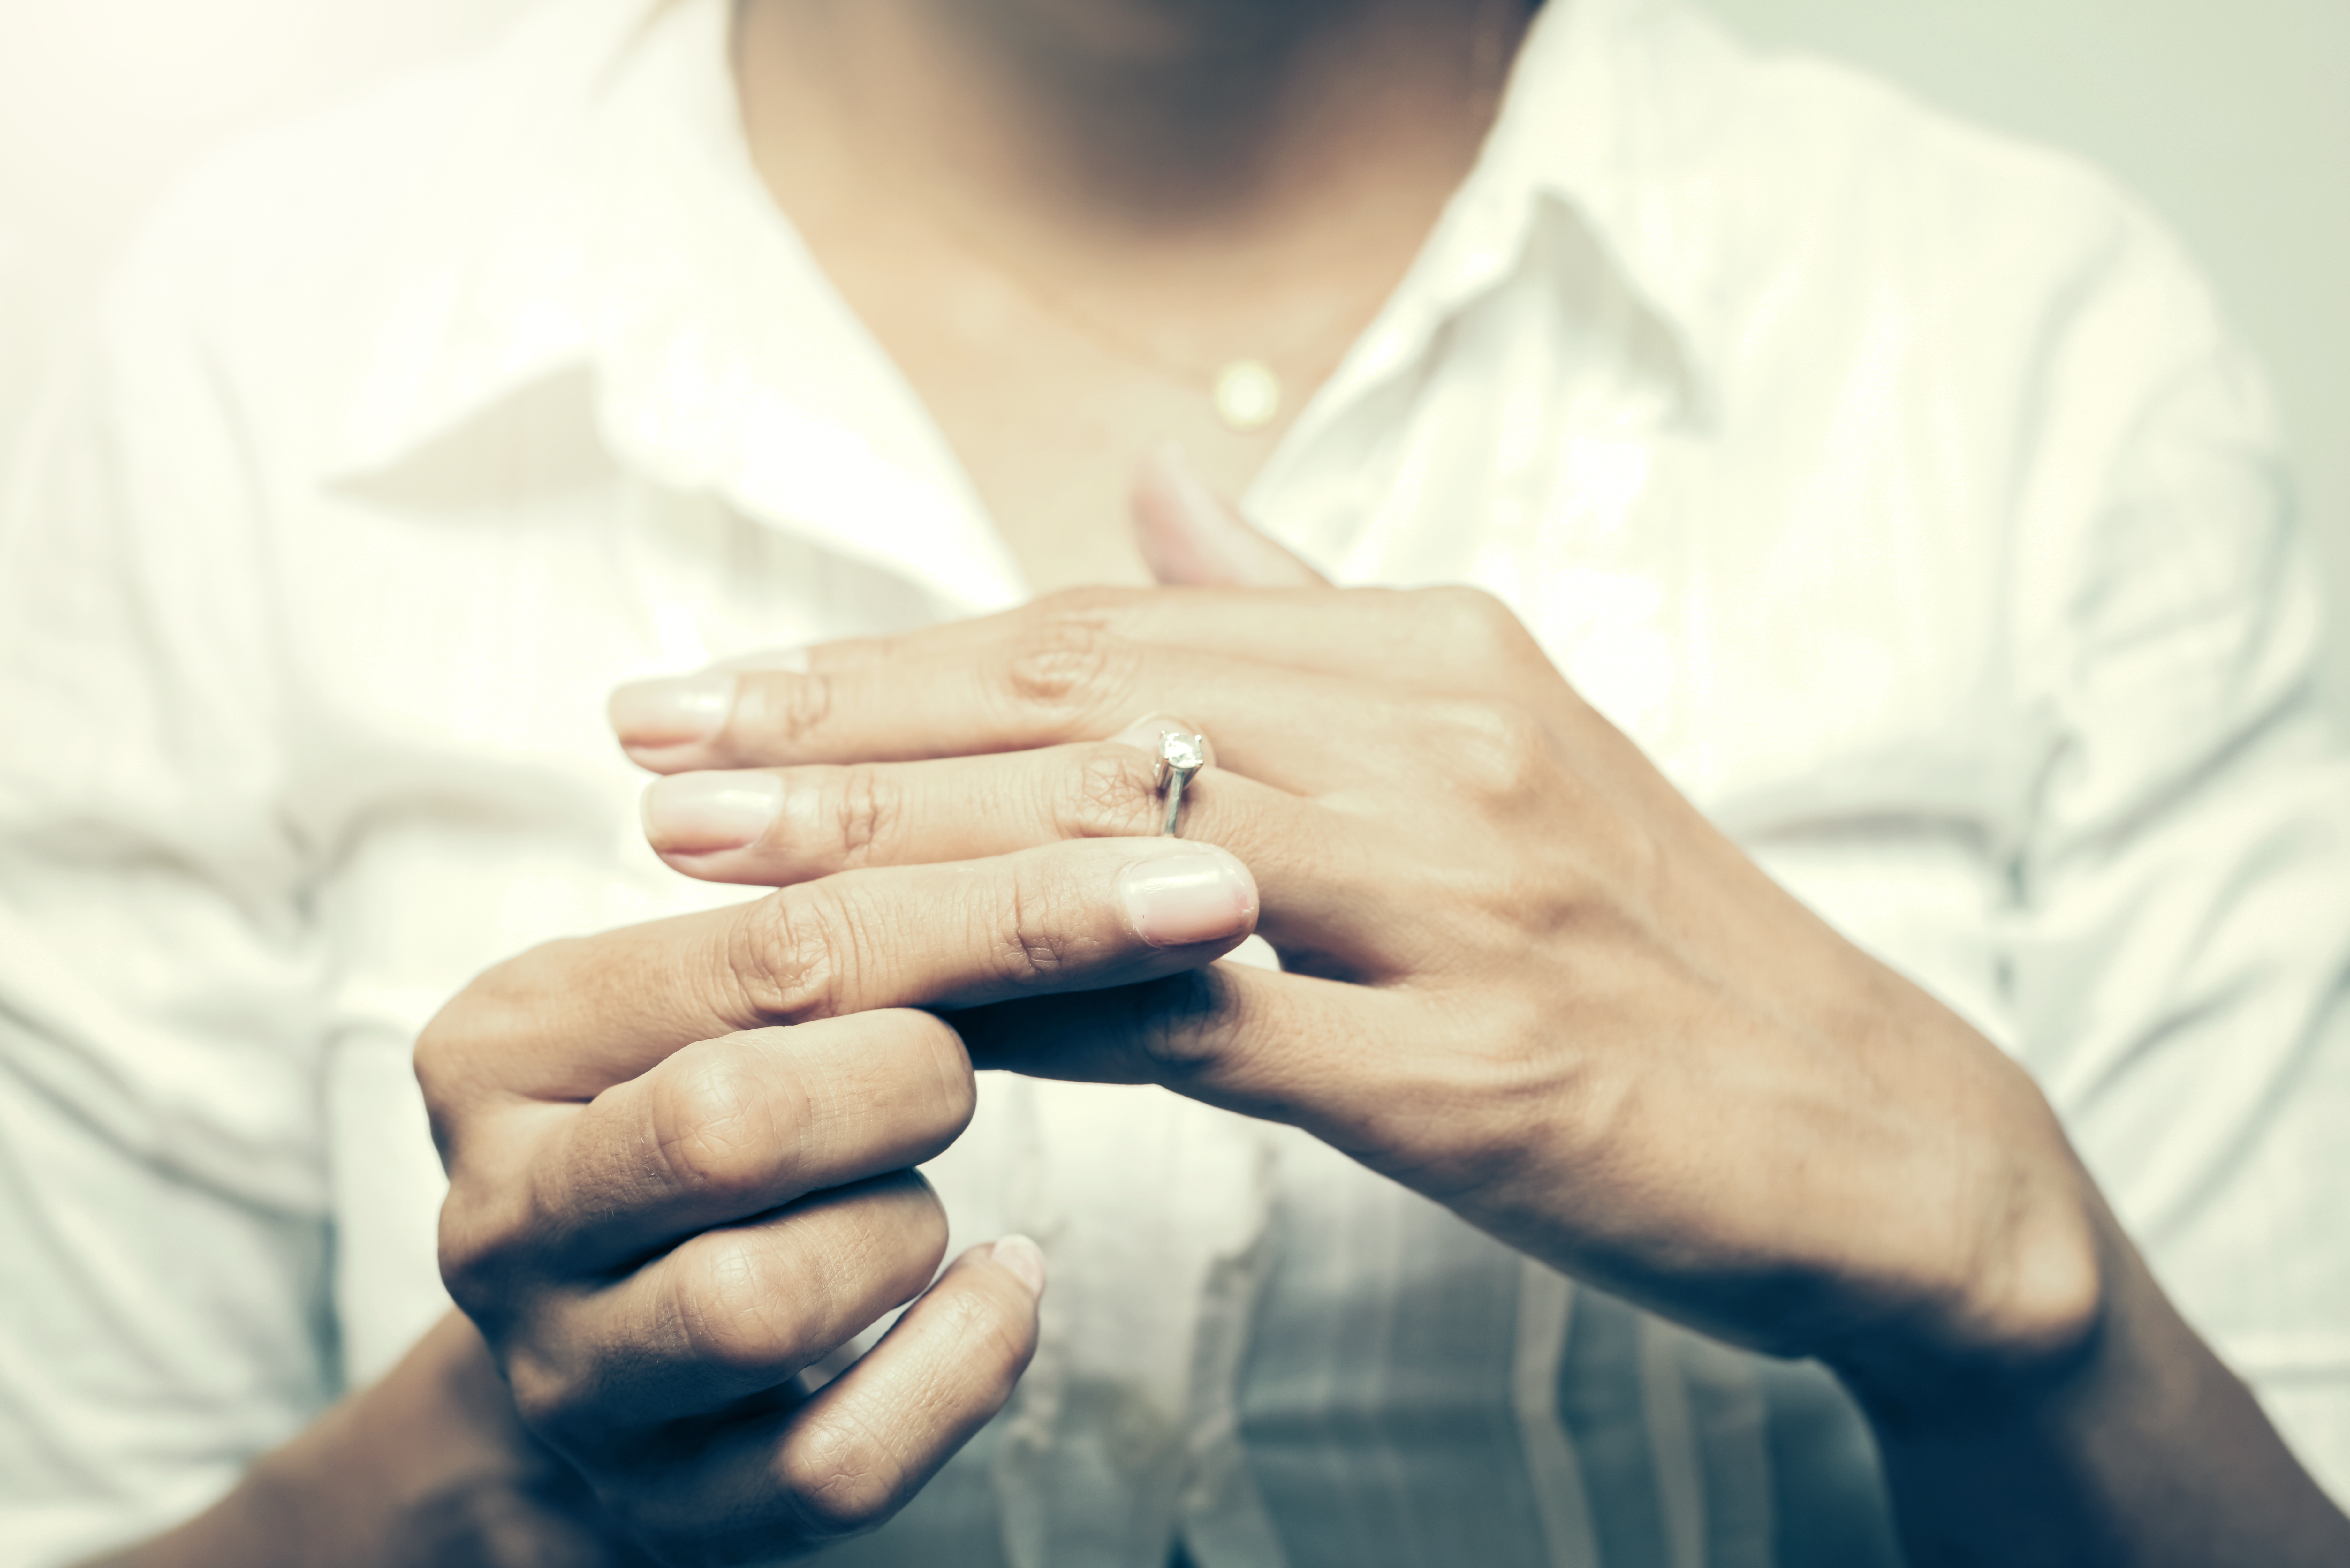 Does God Want Me to Stay in or Leave My Emotionally Abusive Marriage?